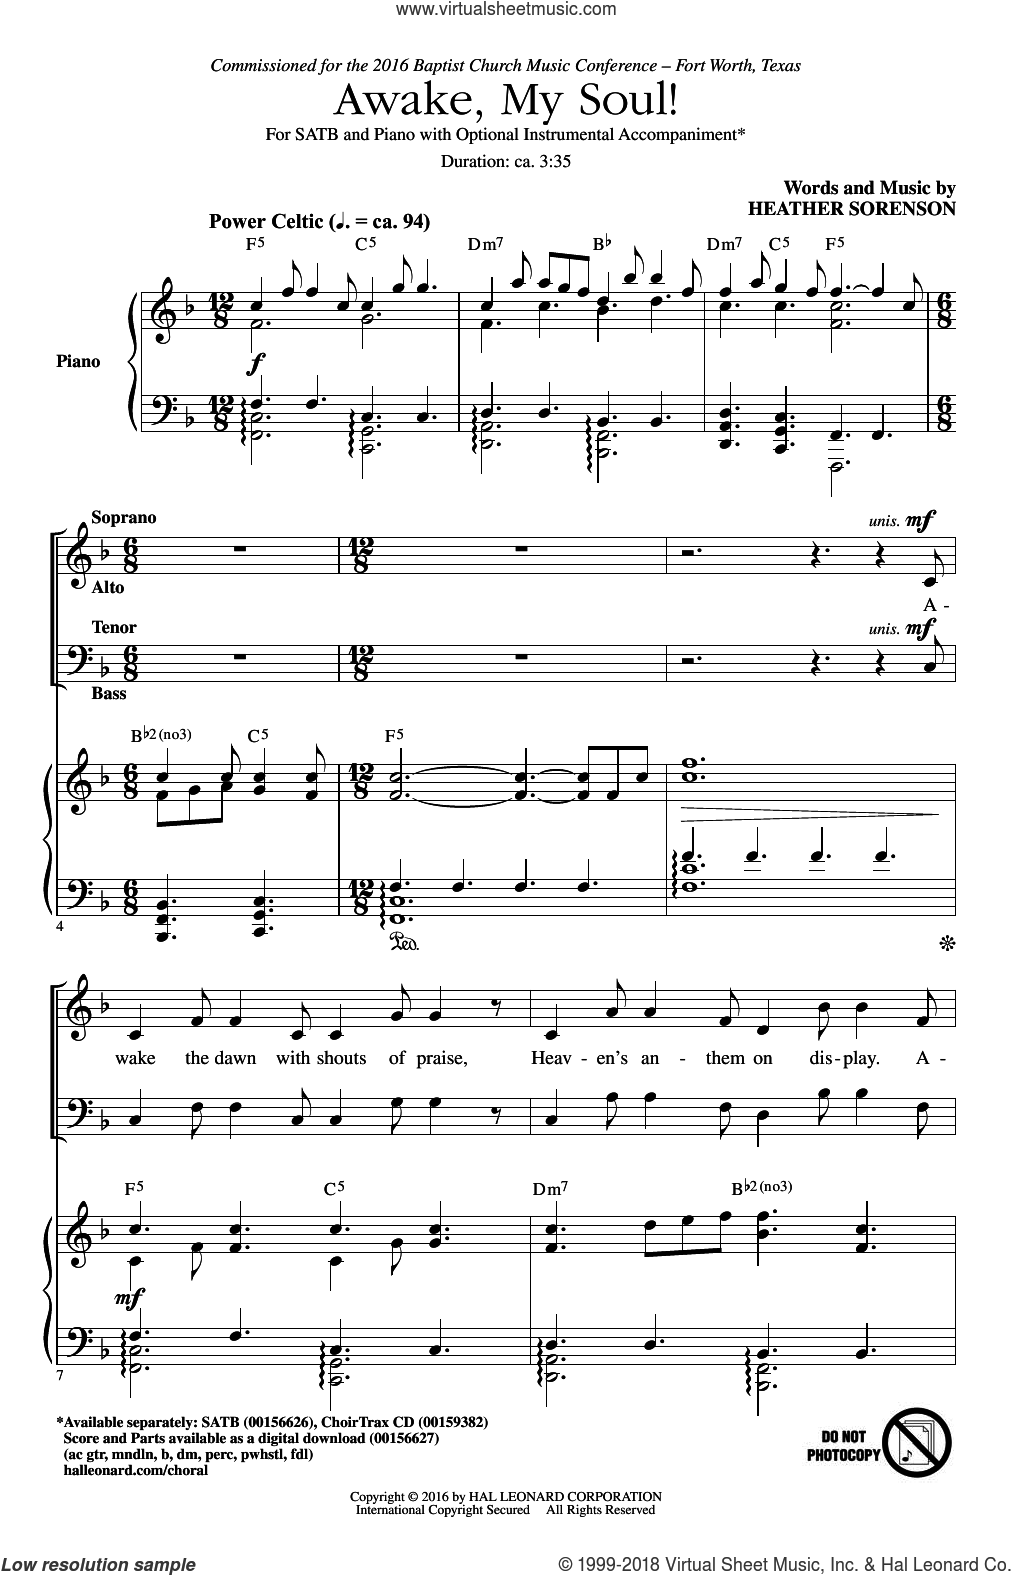 Awake, My Soul! sheet music for choir (SATB: soprano, alto, tenor, bass) by Heather Sorenson, intermediate